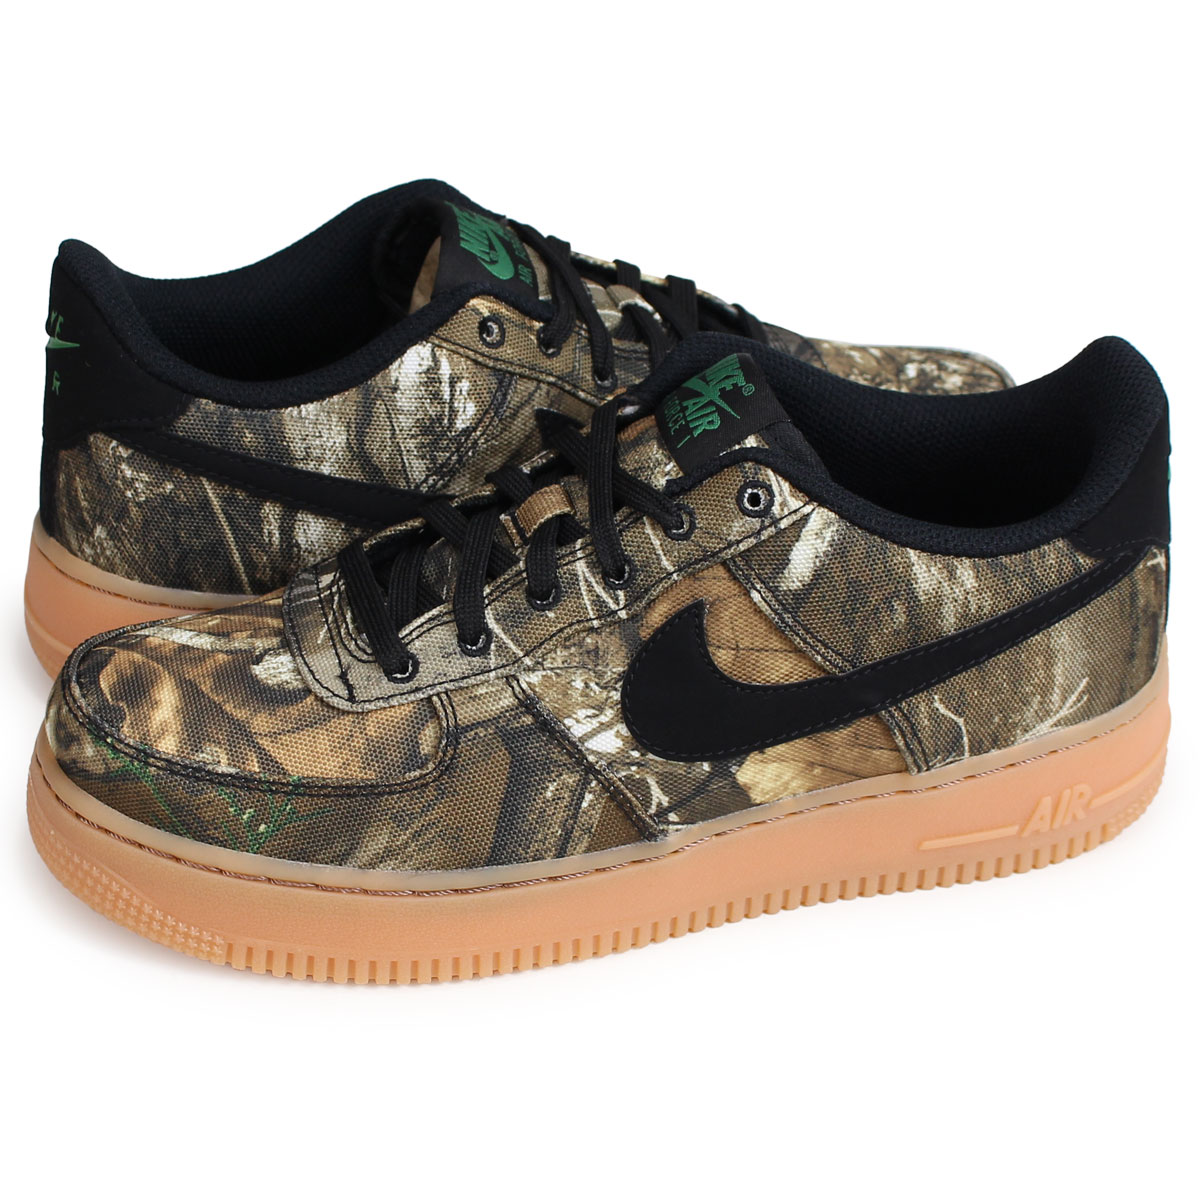 innovative design 3a357 b8c29 Nike NIKE air force 1 sneakers Lady s AIR FORCE 1 LV8 3 GS Realtree  collaboration duck ...